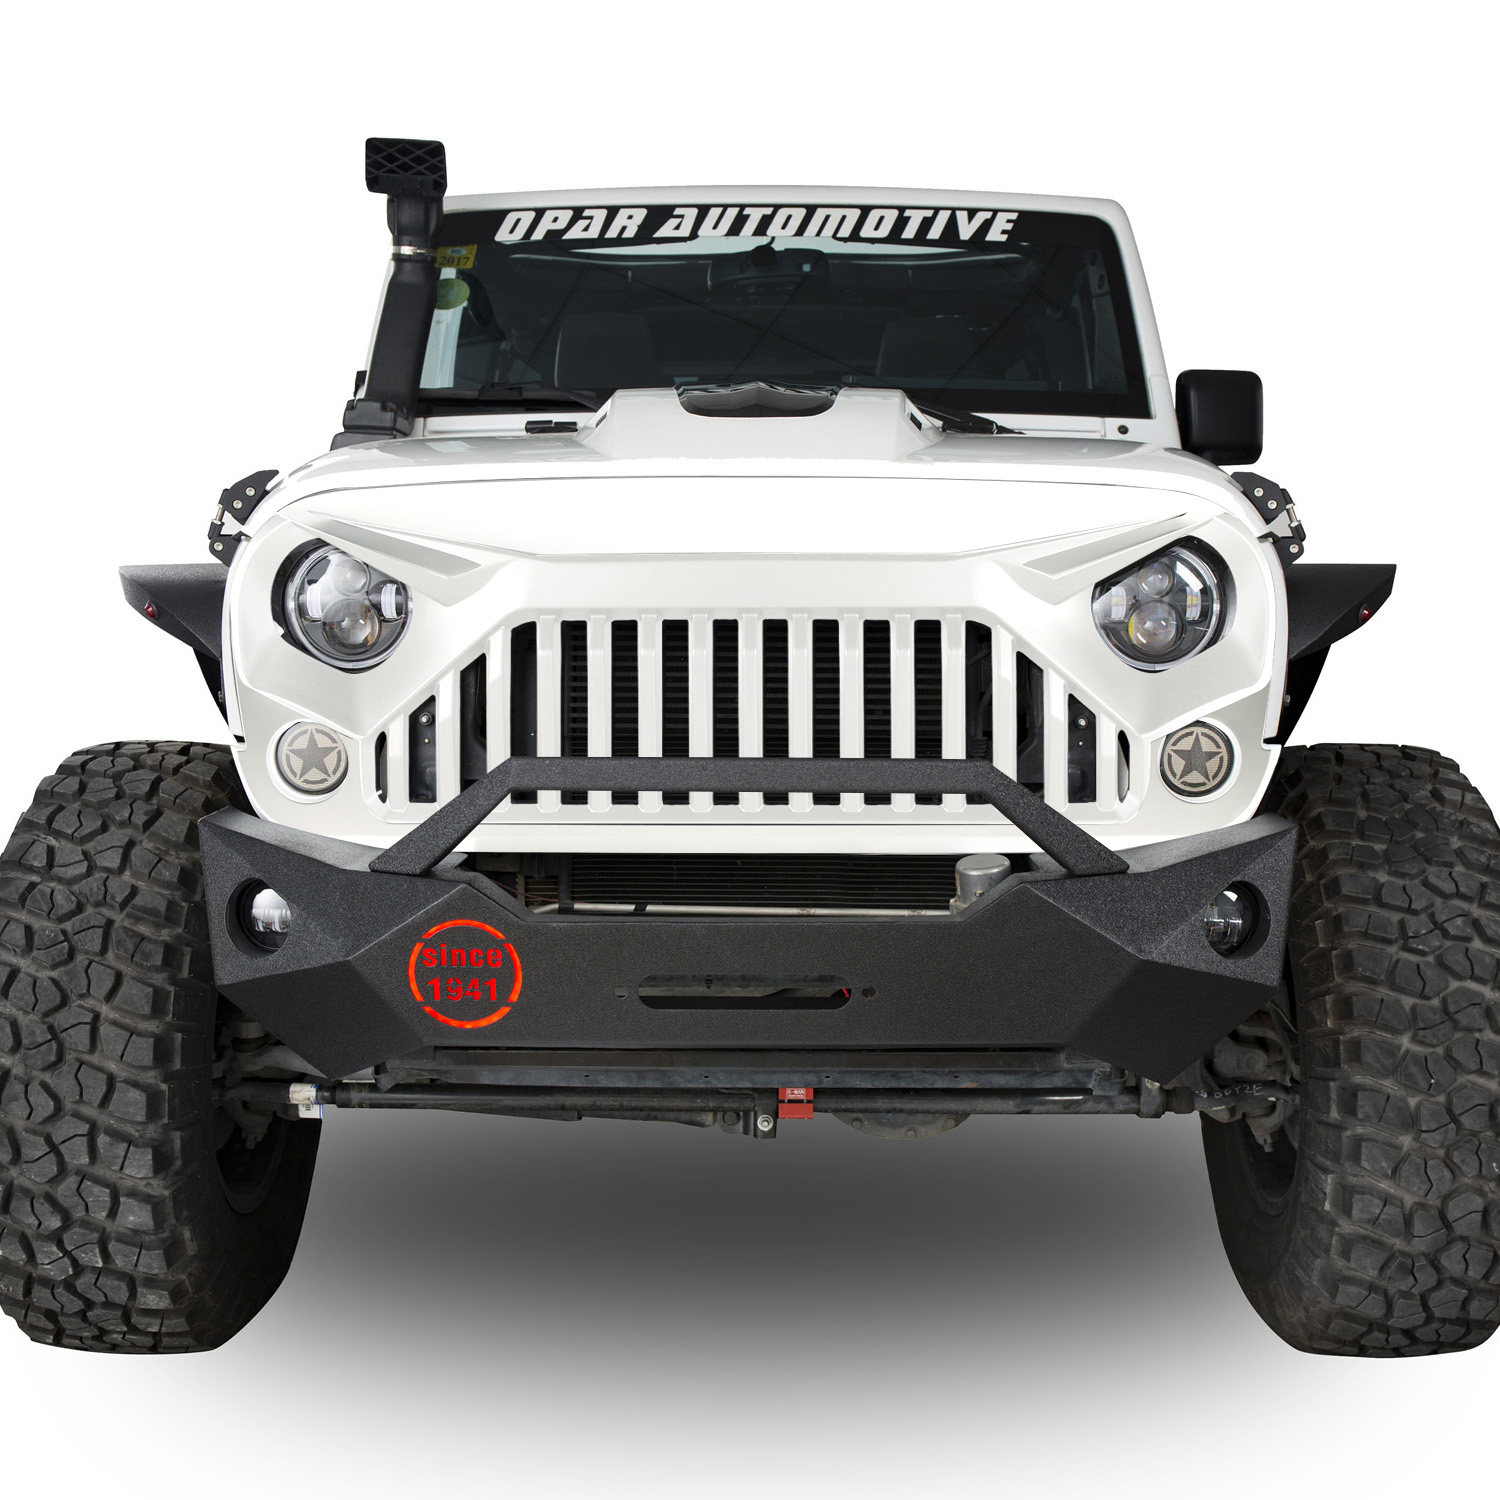 Full White Paint Angry Bird Front Grill Grille Grid For